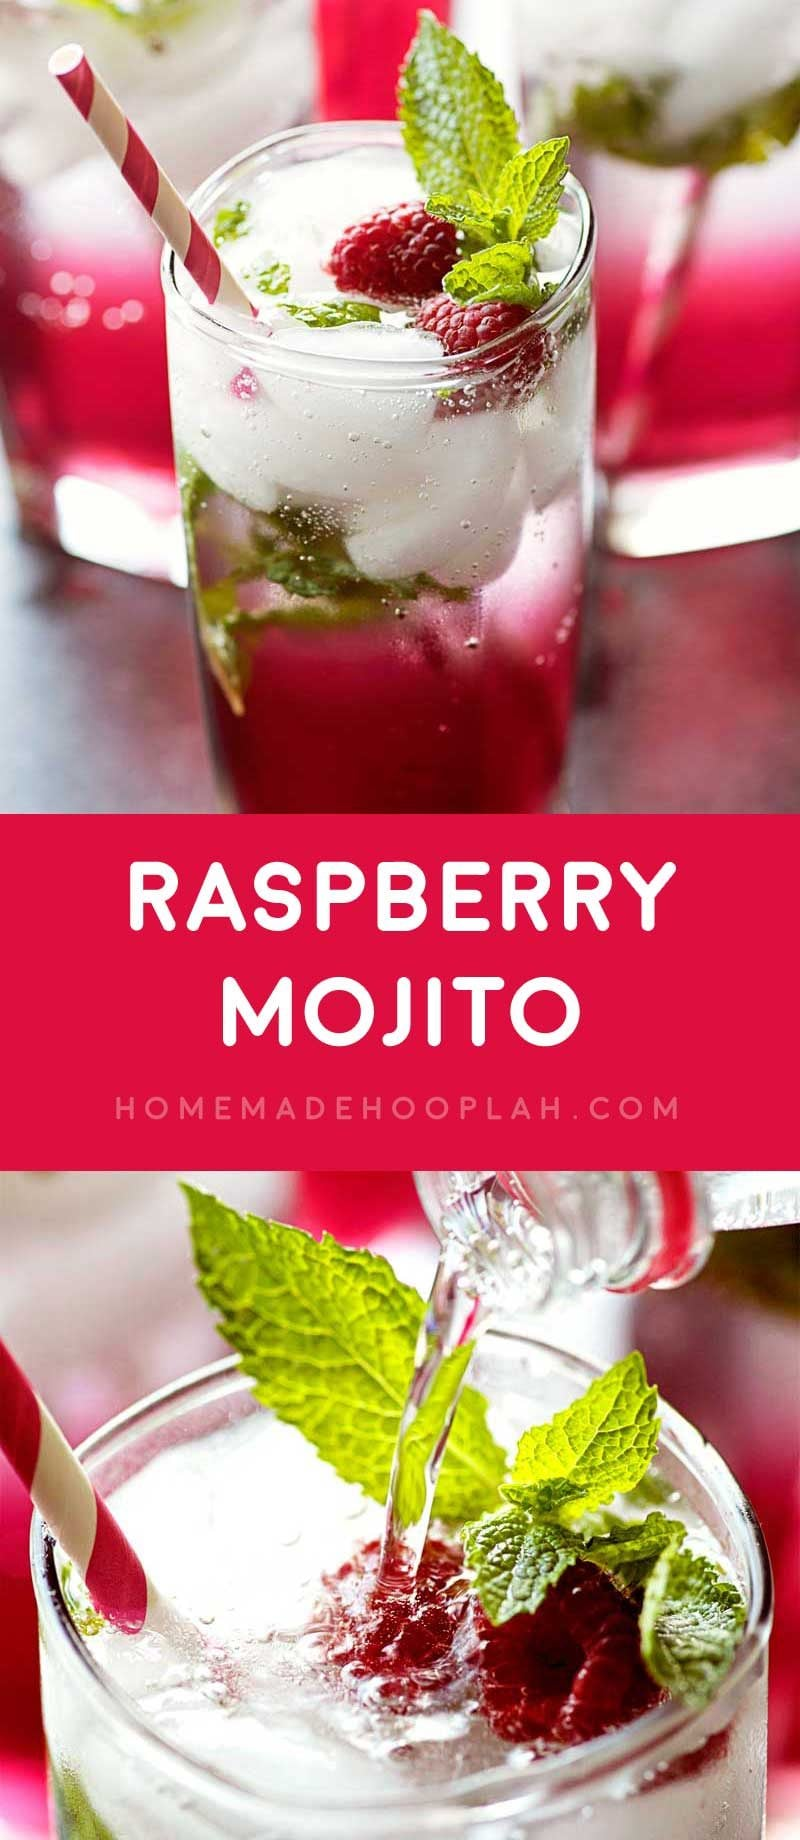 Raspberry Mojito! Minty and refreshing mojitos with a touch of raspberry flavor make for the perfect all-weather drink for holidays, parties, or a chill Friday night. | HomemadeHooplah.com